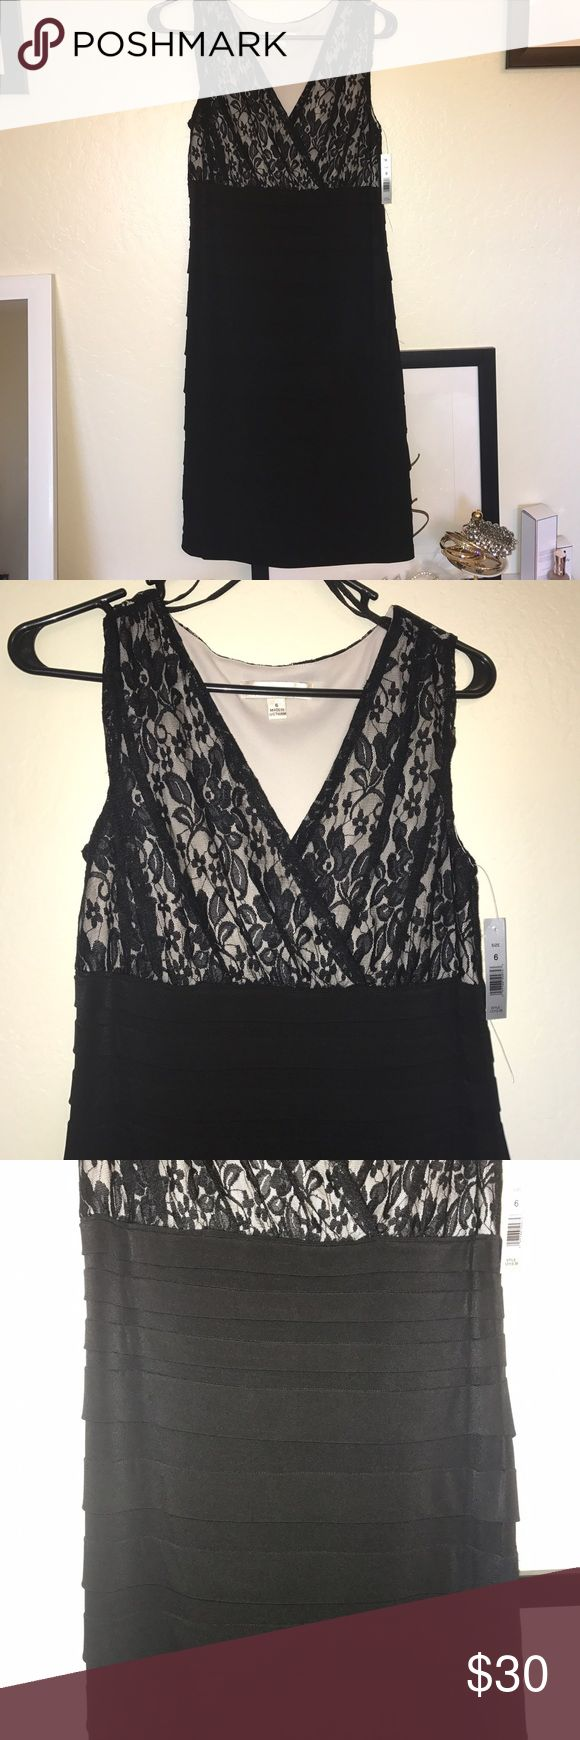 NWT black and white floral lace formal dress NWT black and white floral lace formal dress- NWT but price portion is off. Aa Studio Dresses